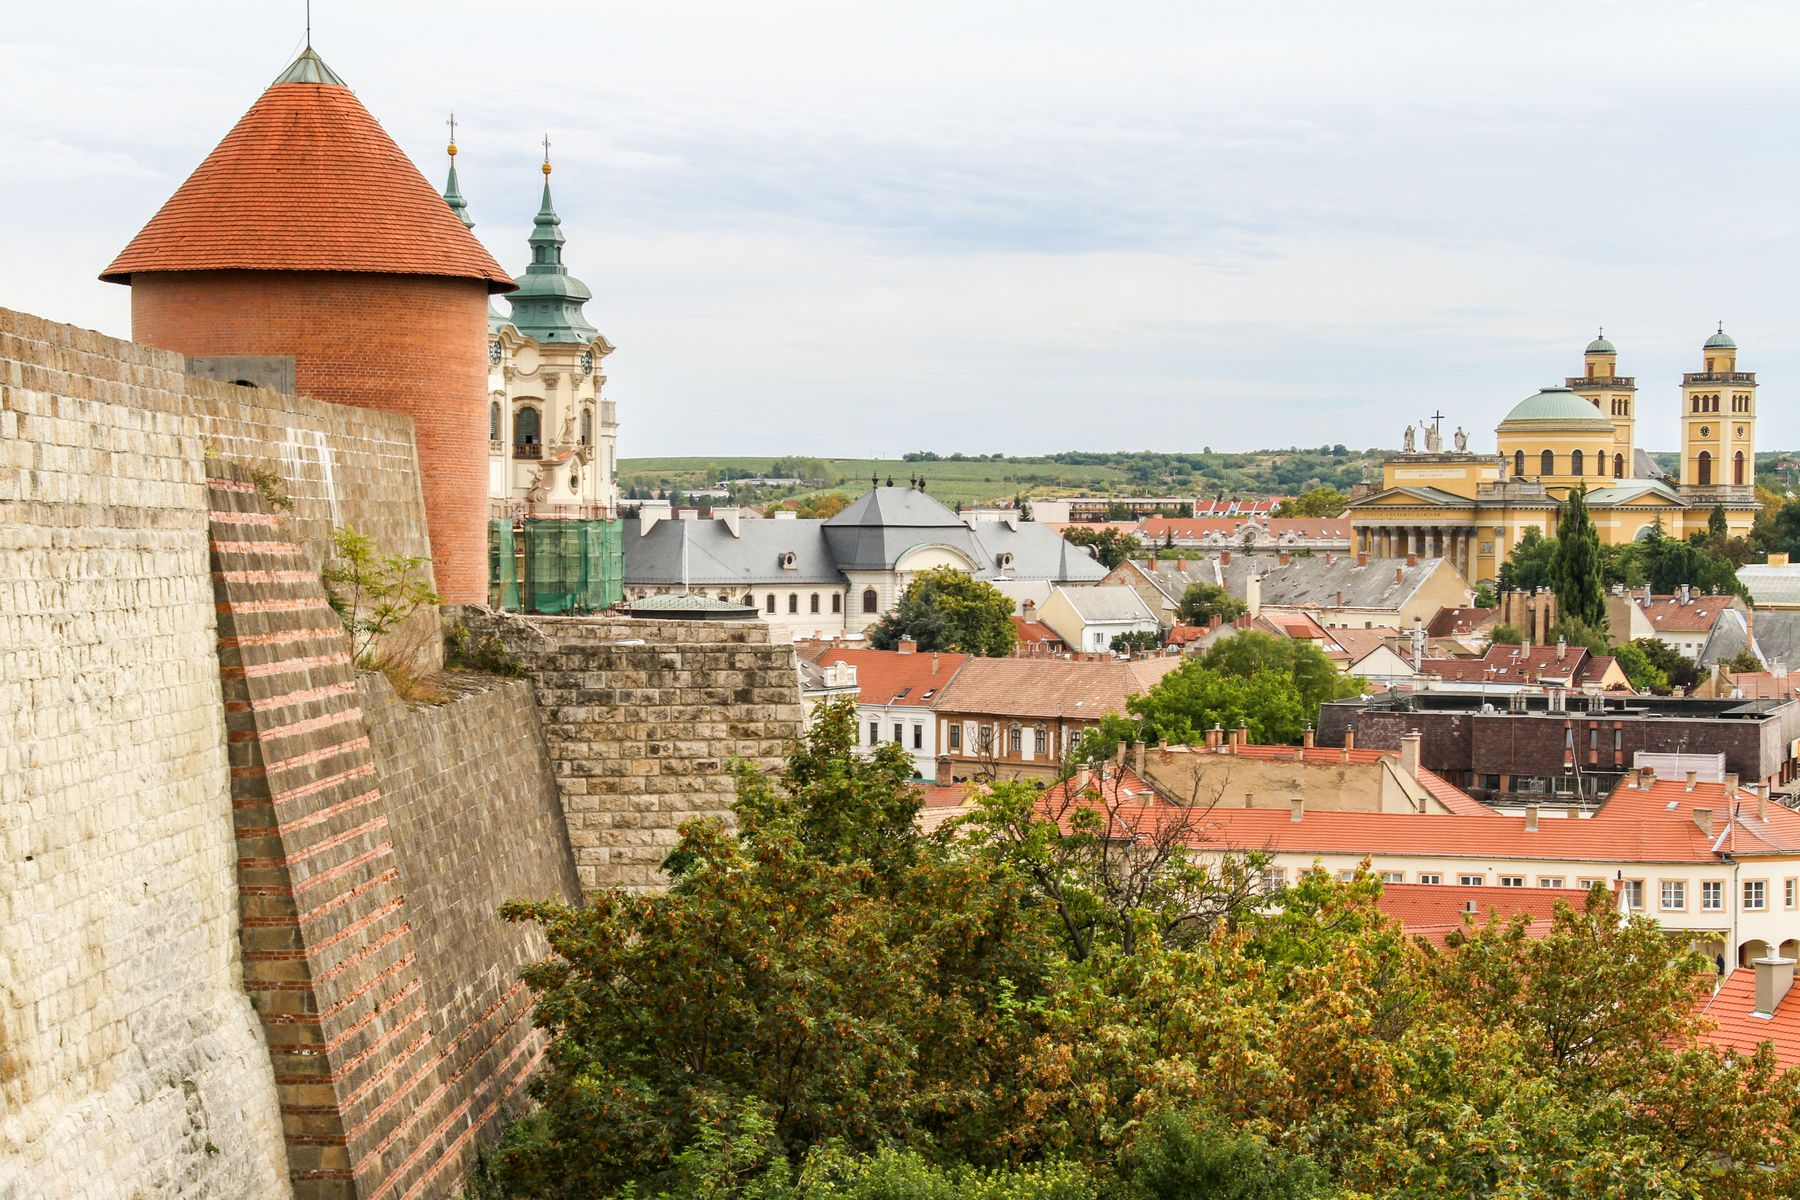 Hungary is one of the destinations you can virtually travel to by means of travel shows on Netflix and other platforms